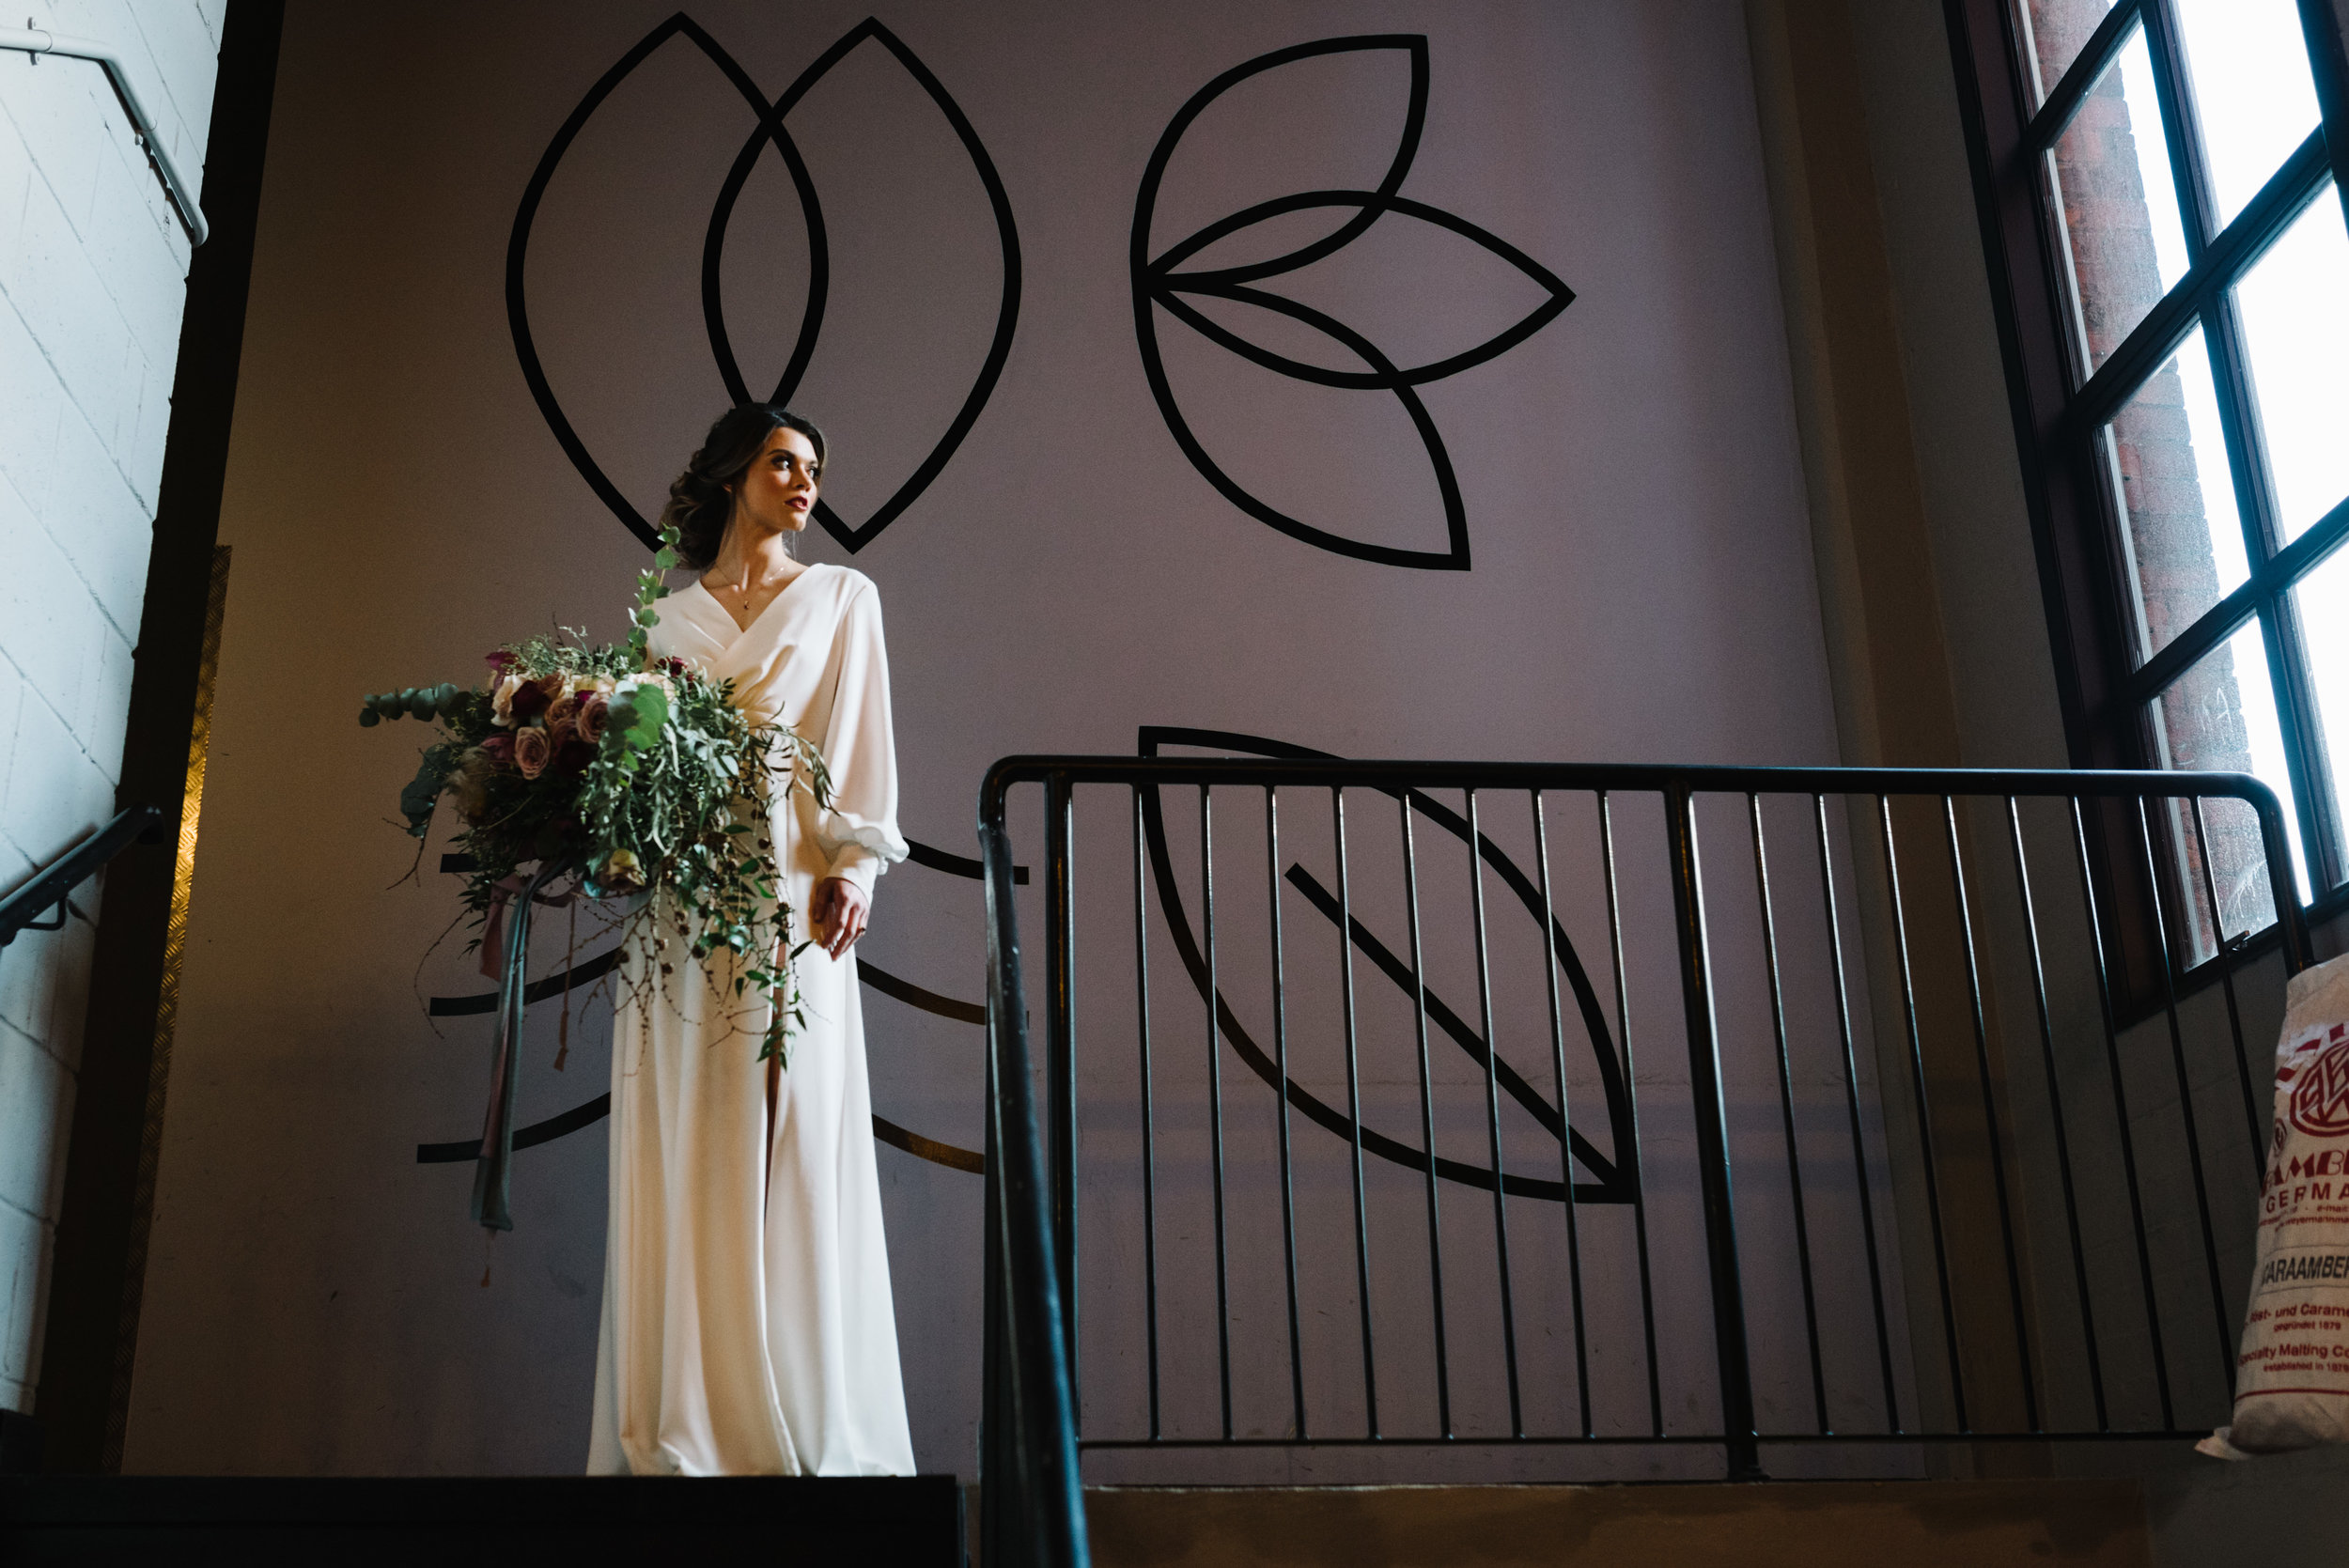 Modern Wedding Inspiration Shoot in Glasgow Brewery With a Frill Installation, Candy Floss and Neon 00179.jpg